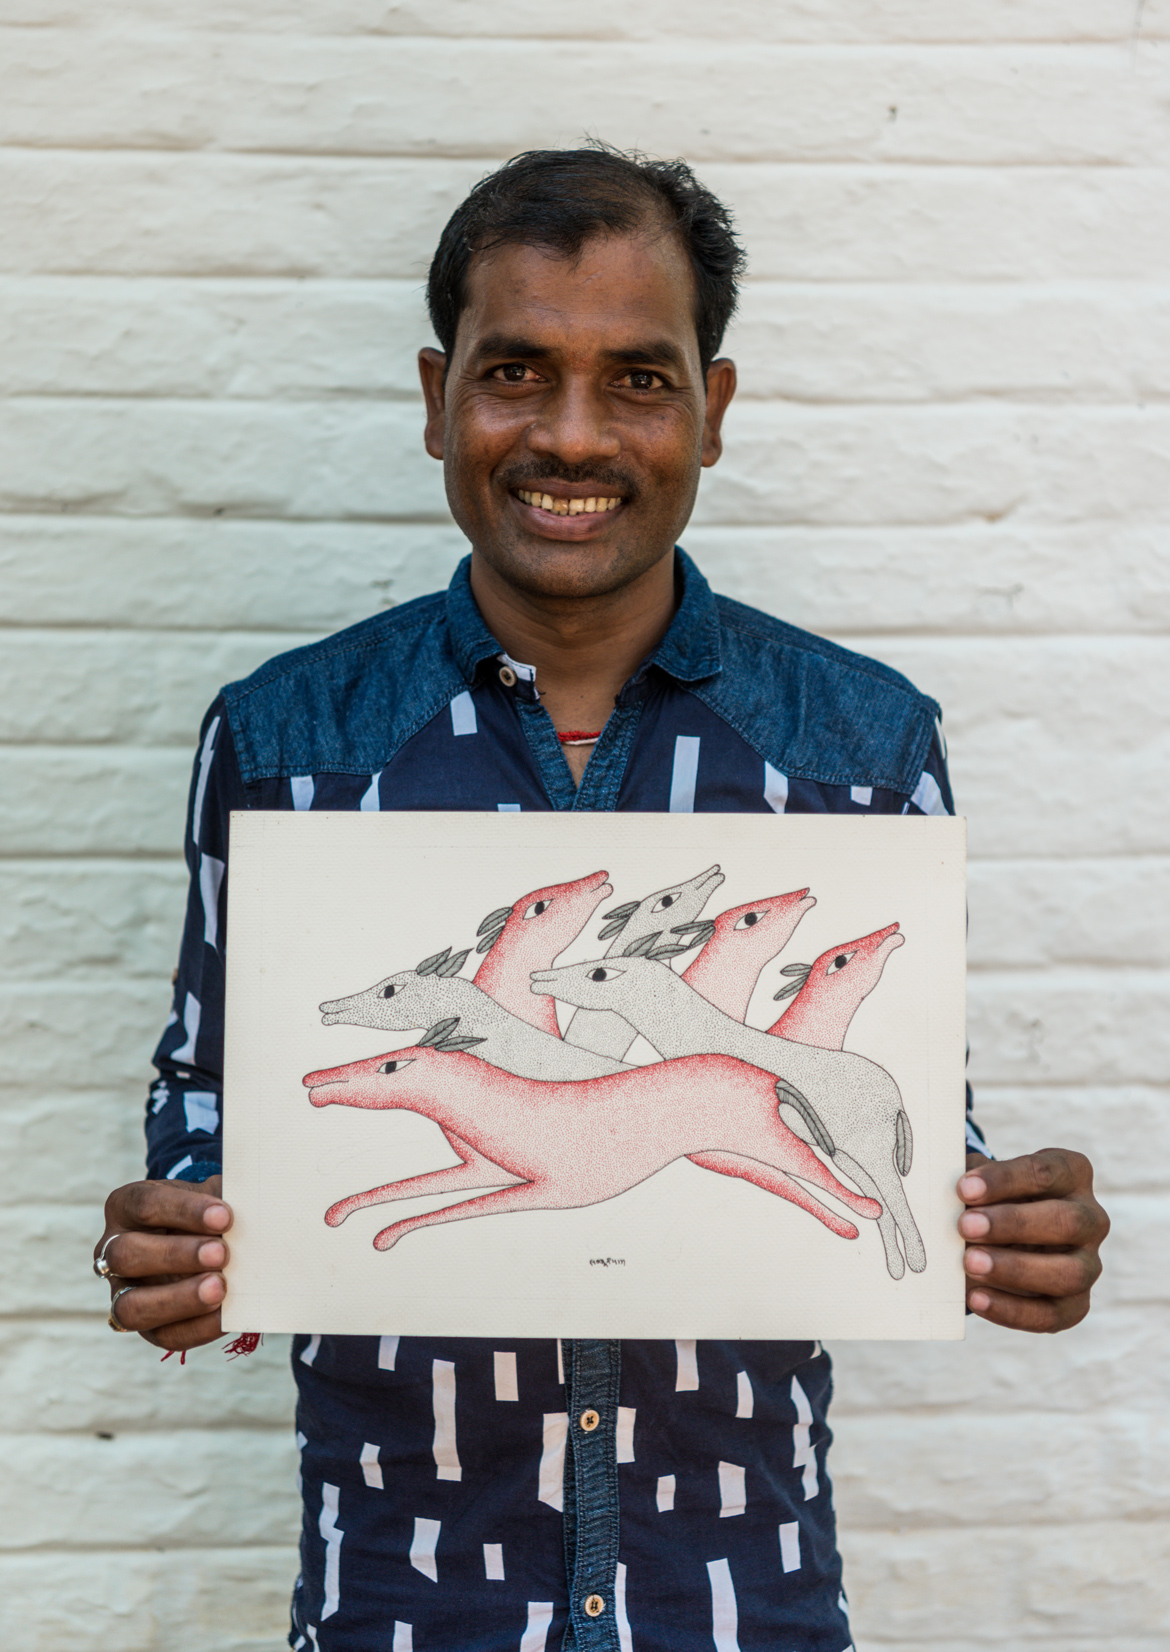 Ram Kumar Shyam, an artist from Patangarh village poses with one of his artworks at Kipling Camp in Kanha